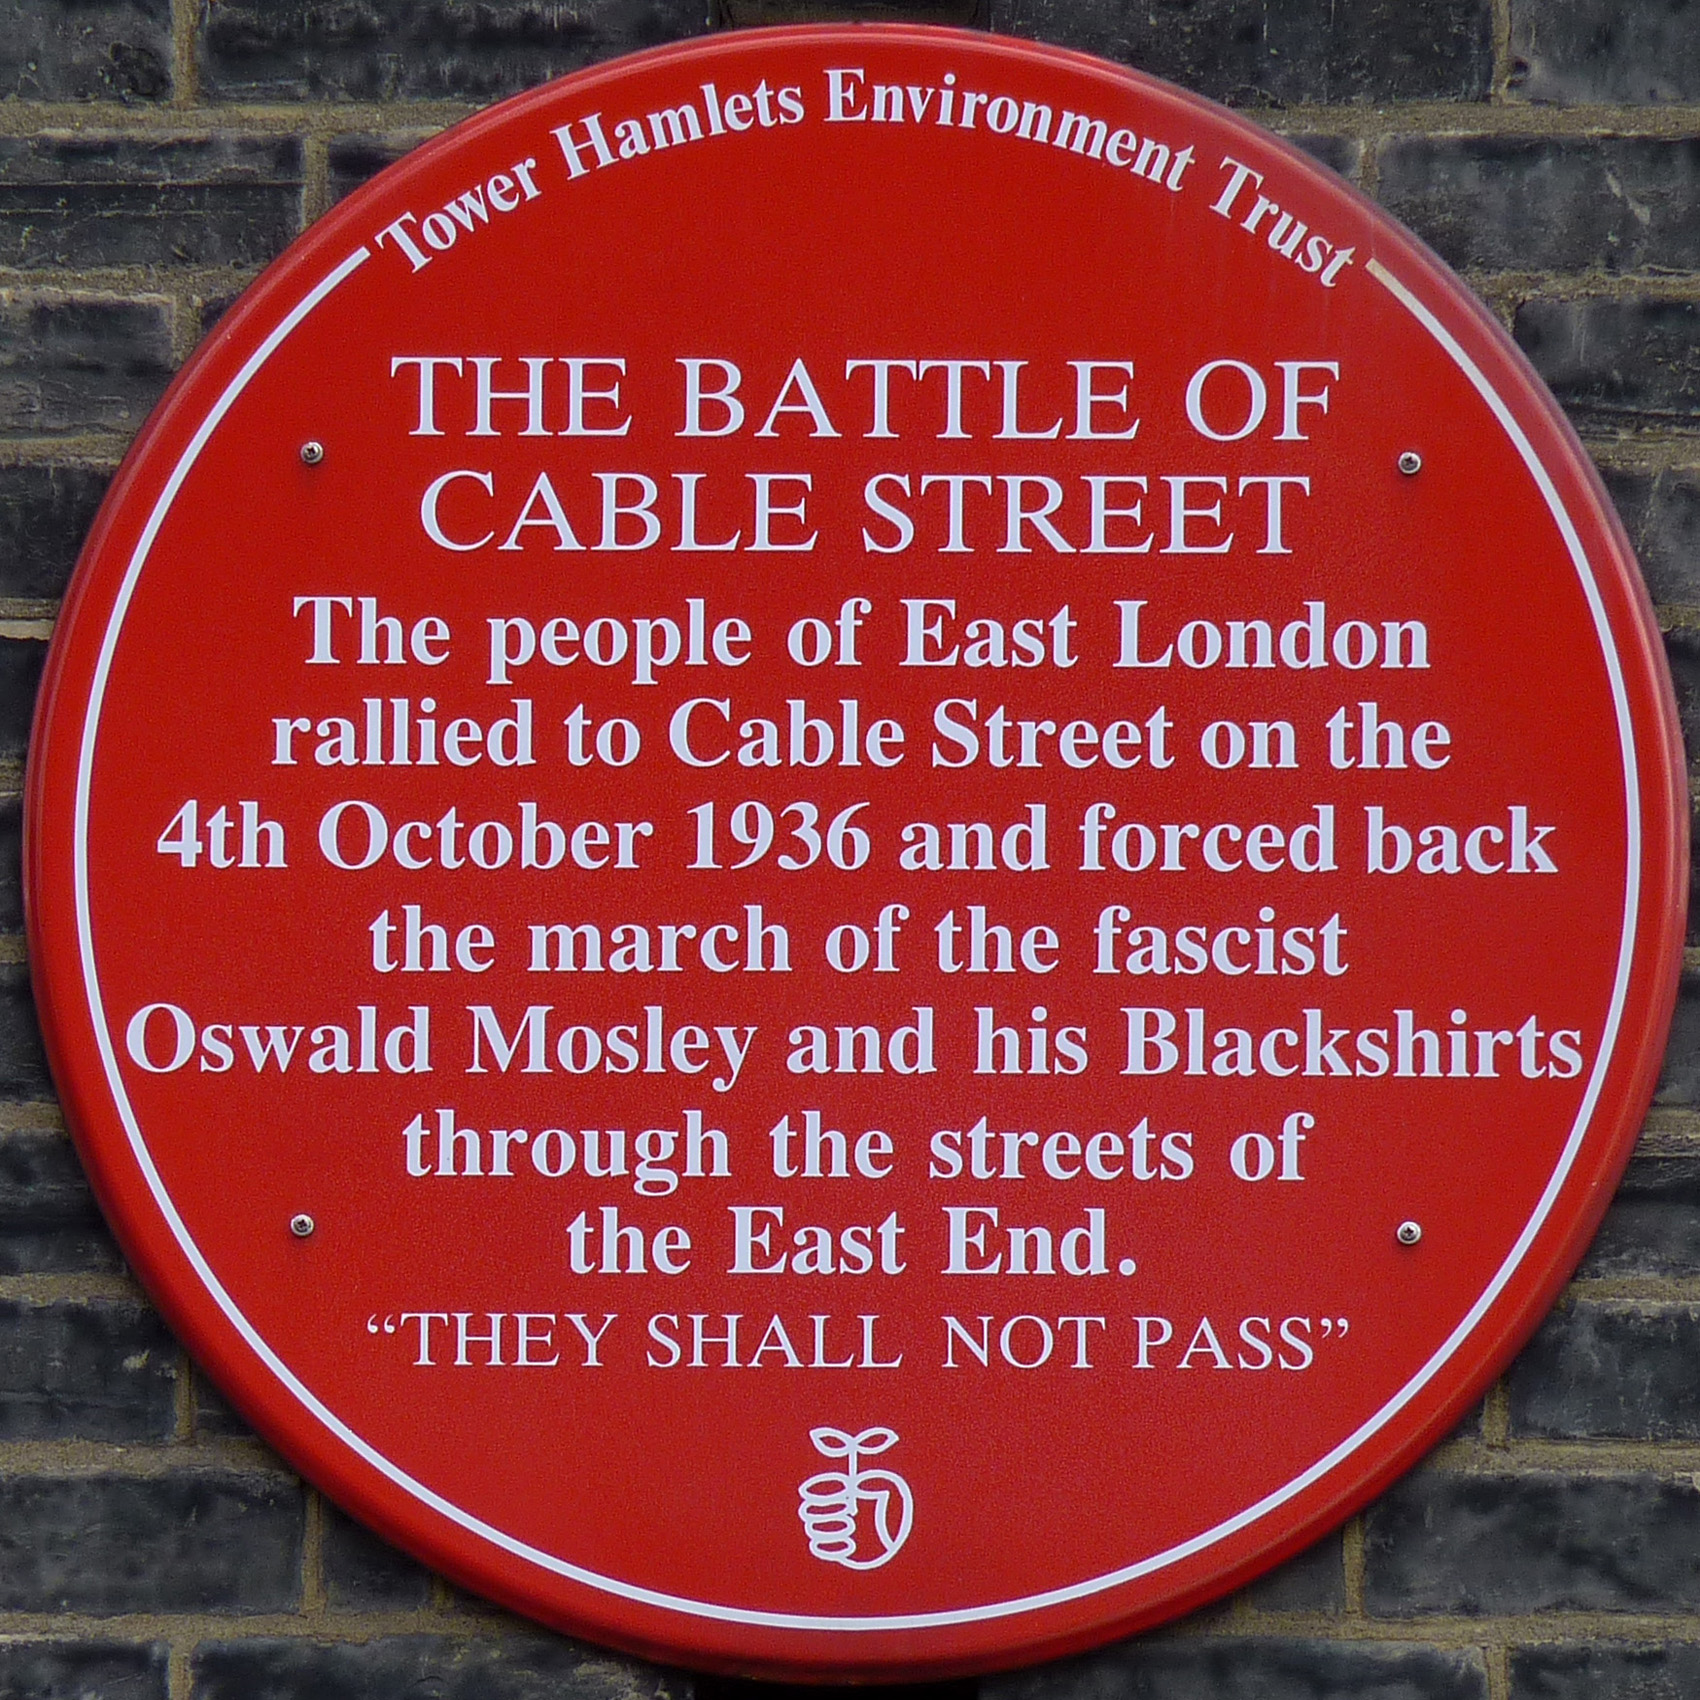 """A circular plaque, white text on red background which reads: """"The people of East London rallied to Cable Street on the 4th October 1936 and forced back the march of the fascist Oswald Mosley and his Blackshirts through the streets of the East End. """"THEY SHALL NOT PASS"""""""